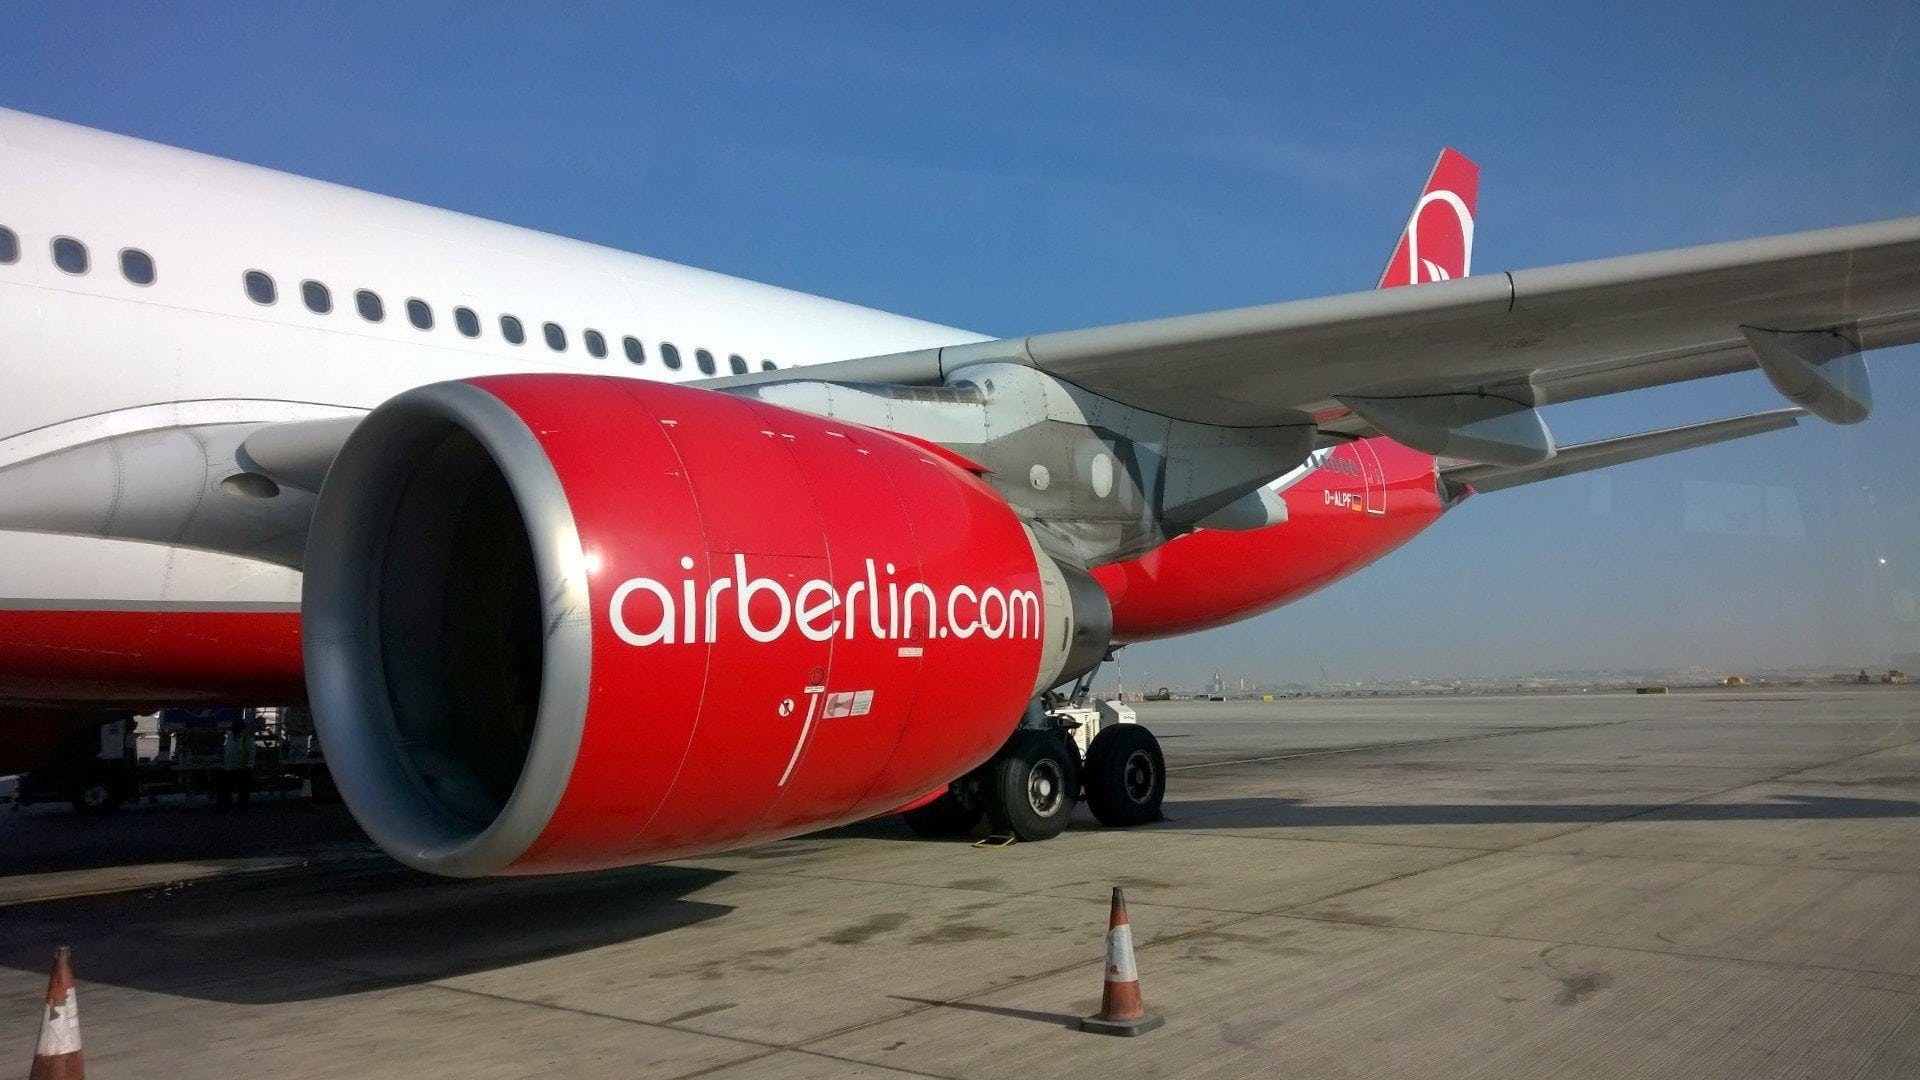 Review: airberlin Business Class Airbus A330-200